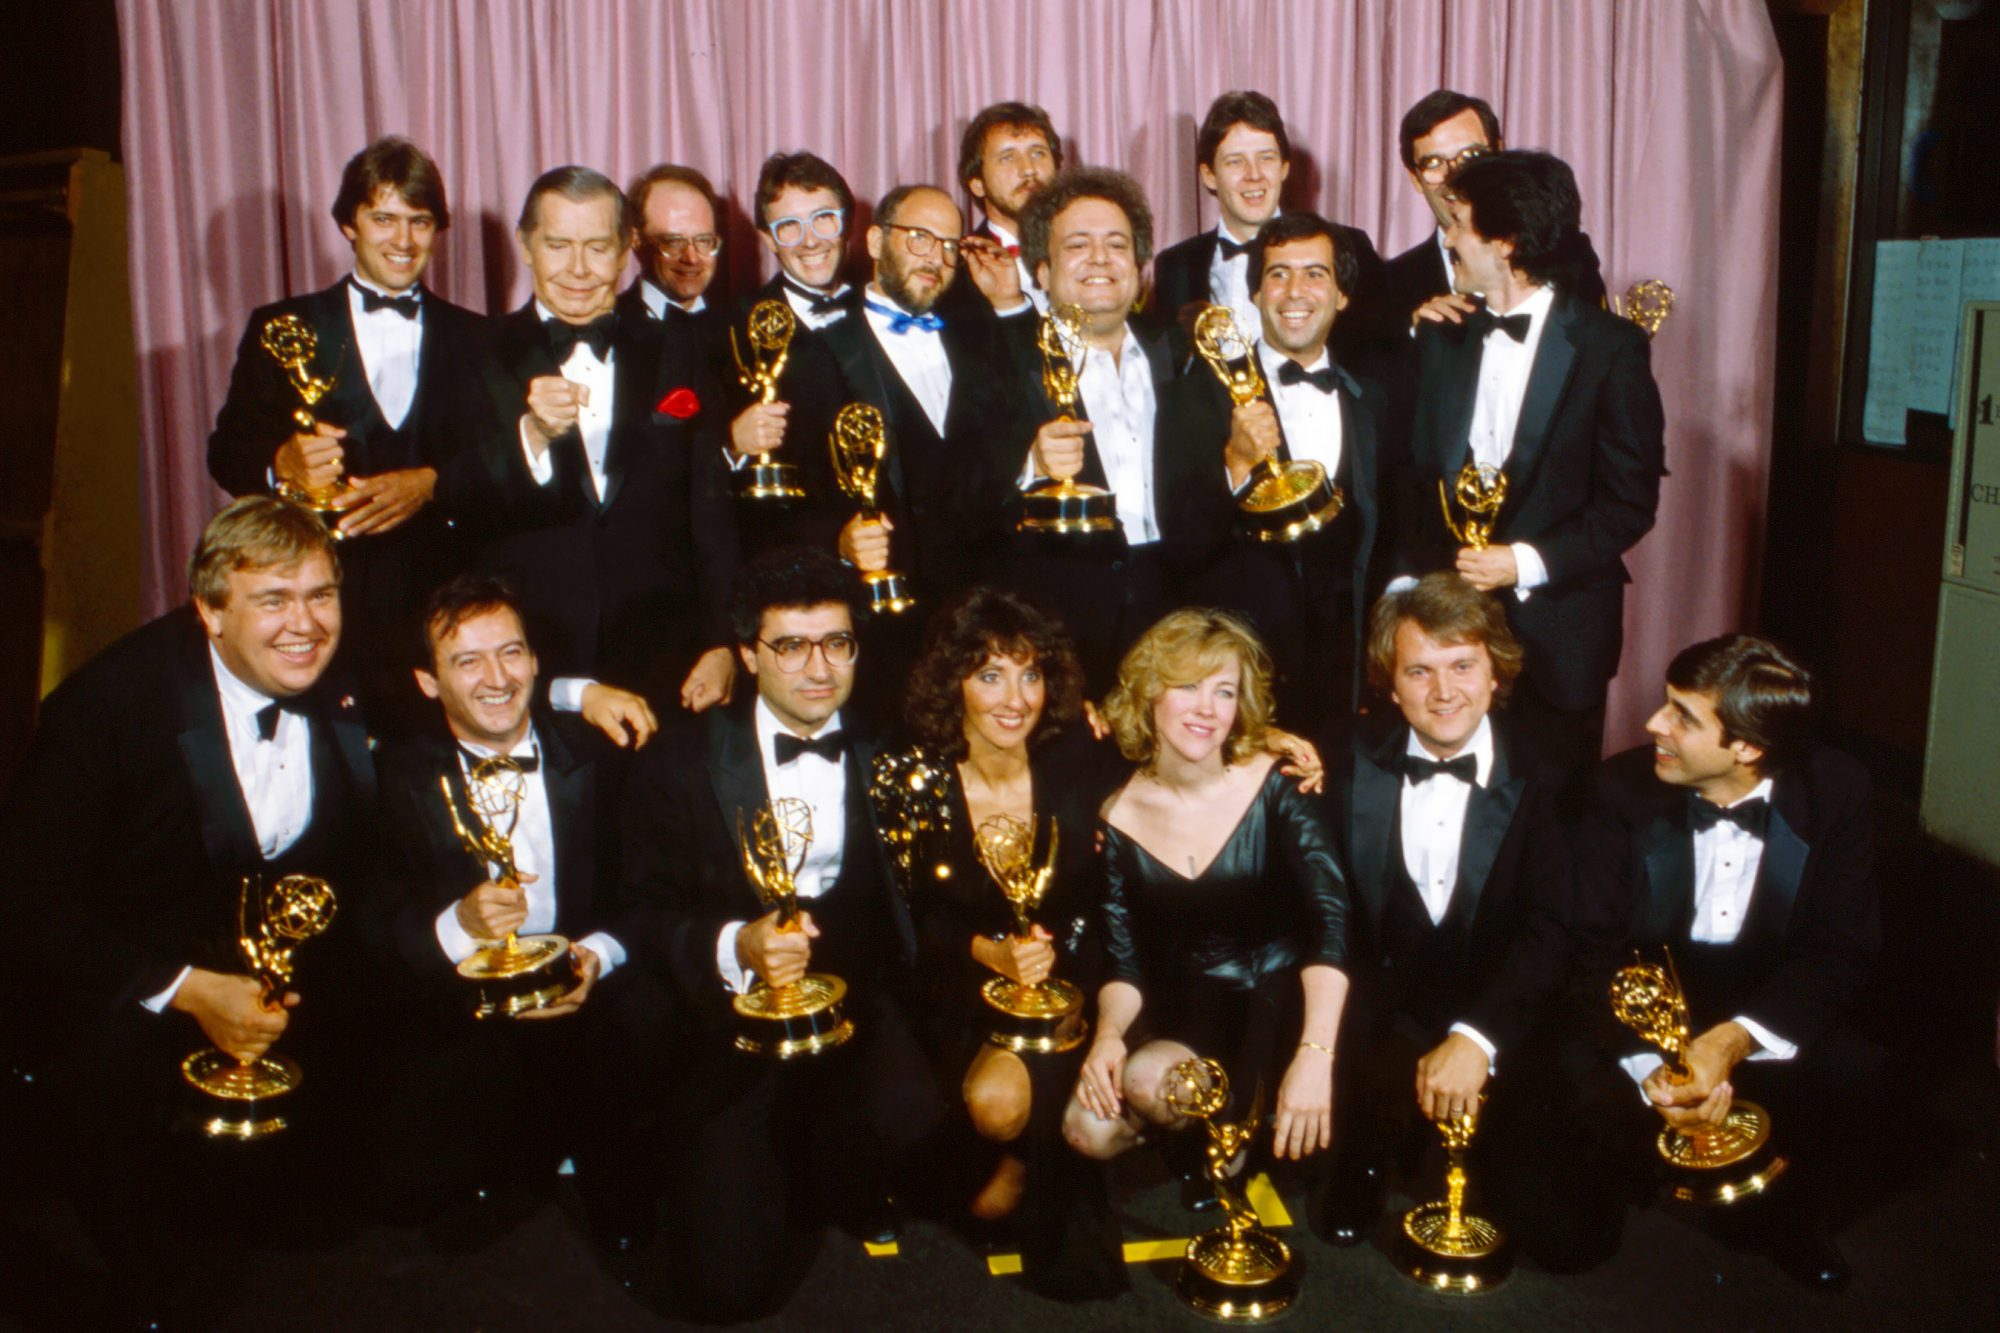 Eugene Levy & Catherine O'Hara (Check Them Out in the Front Row!)